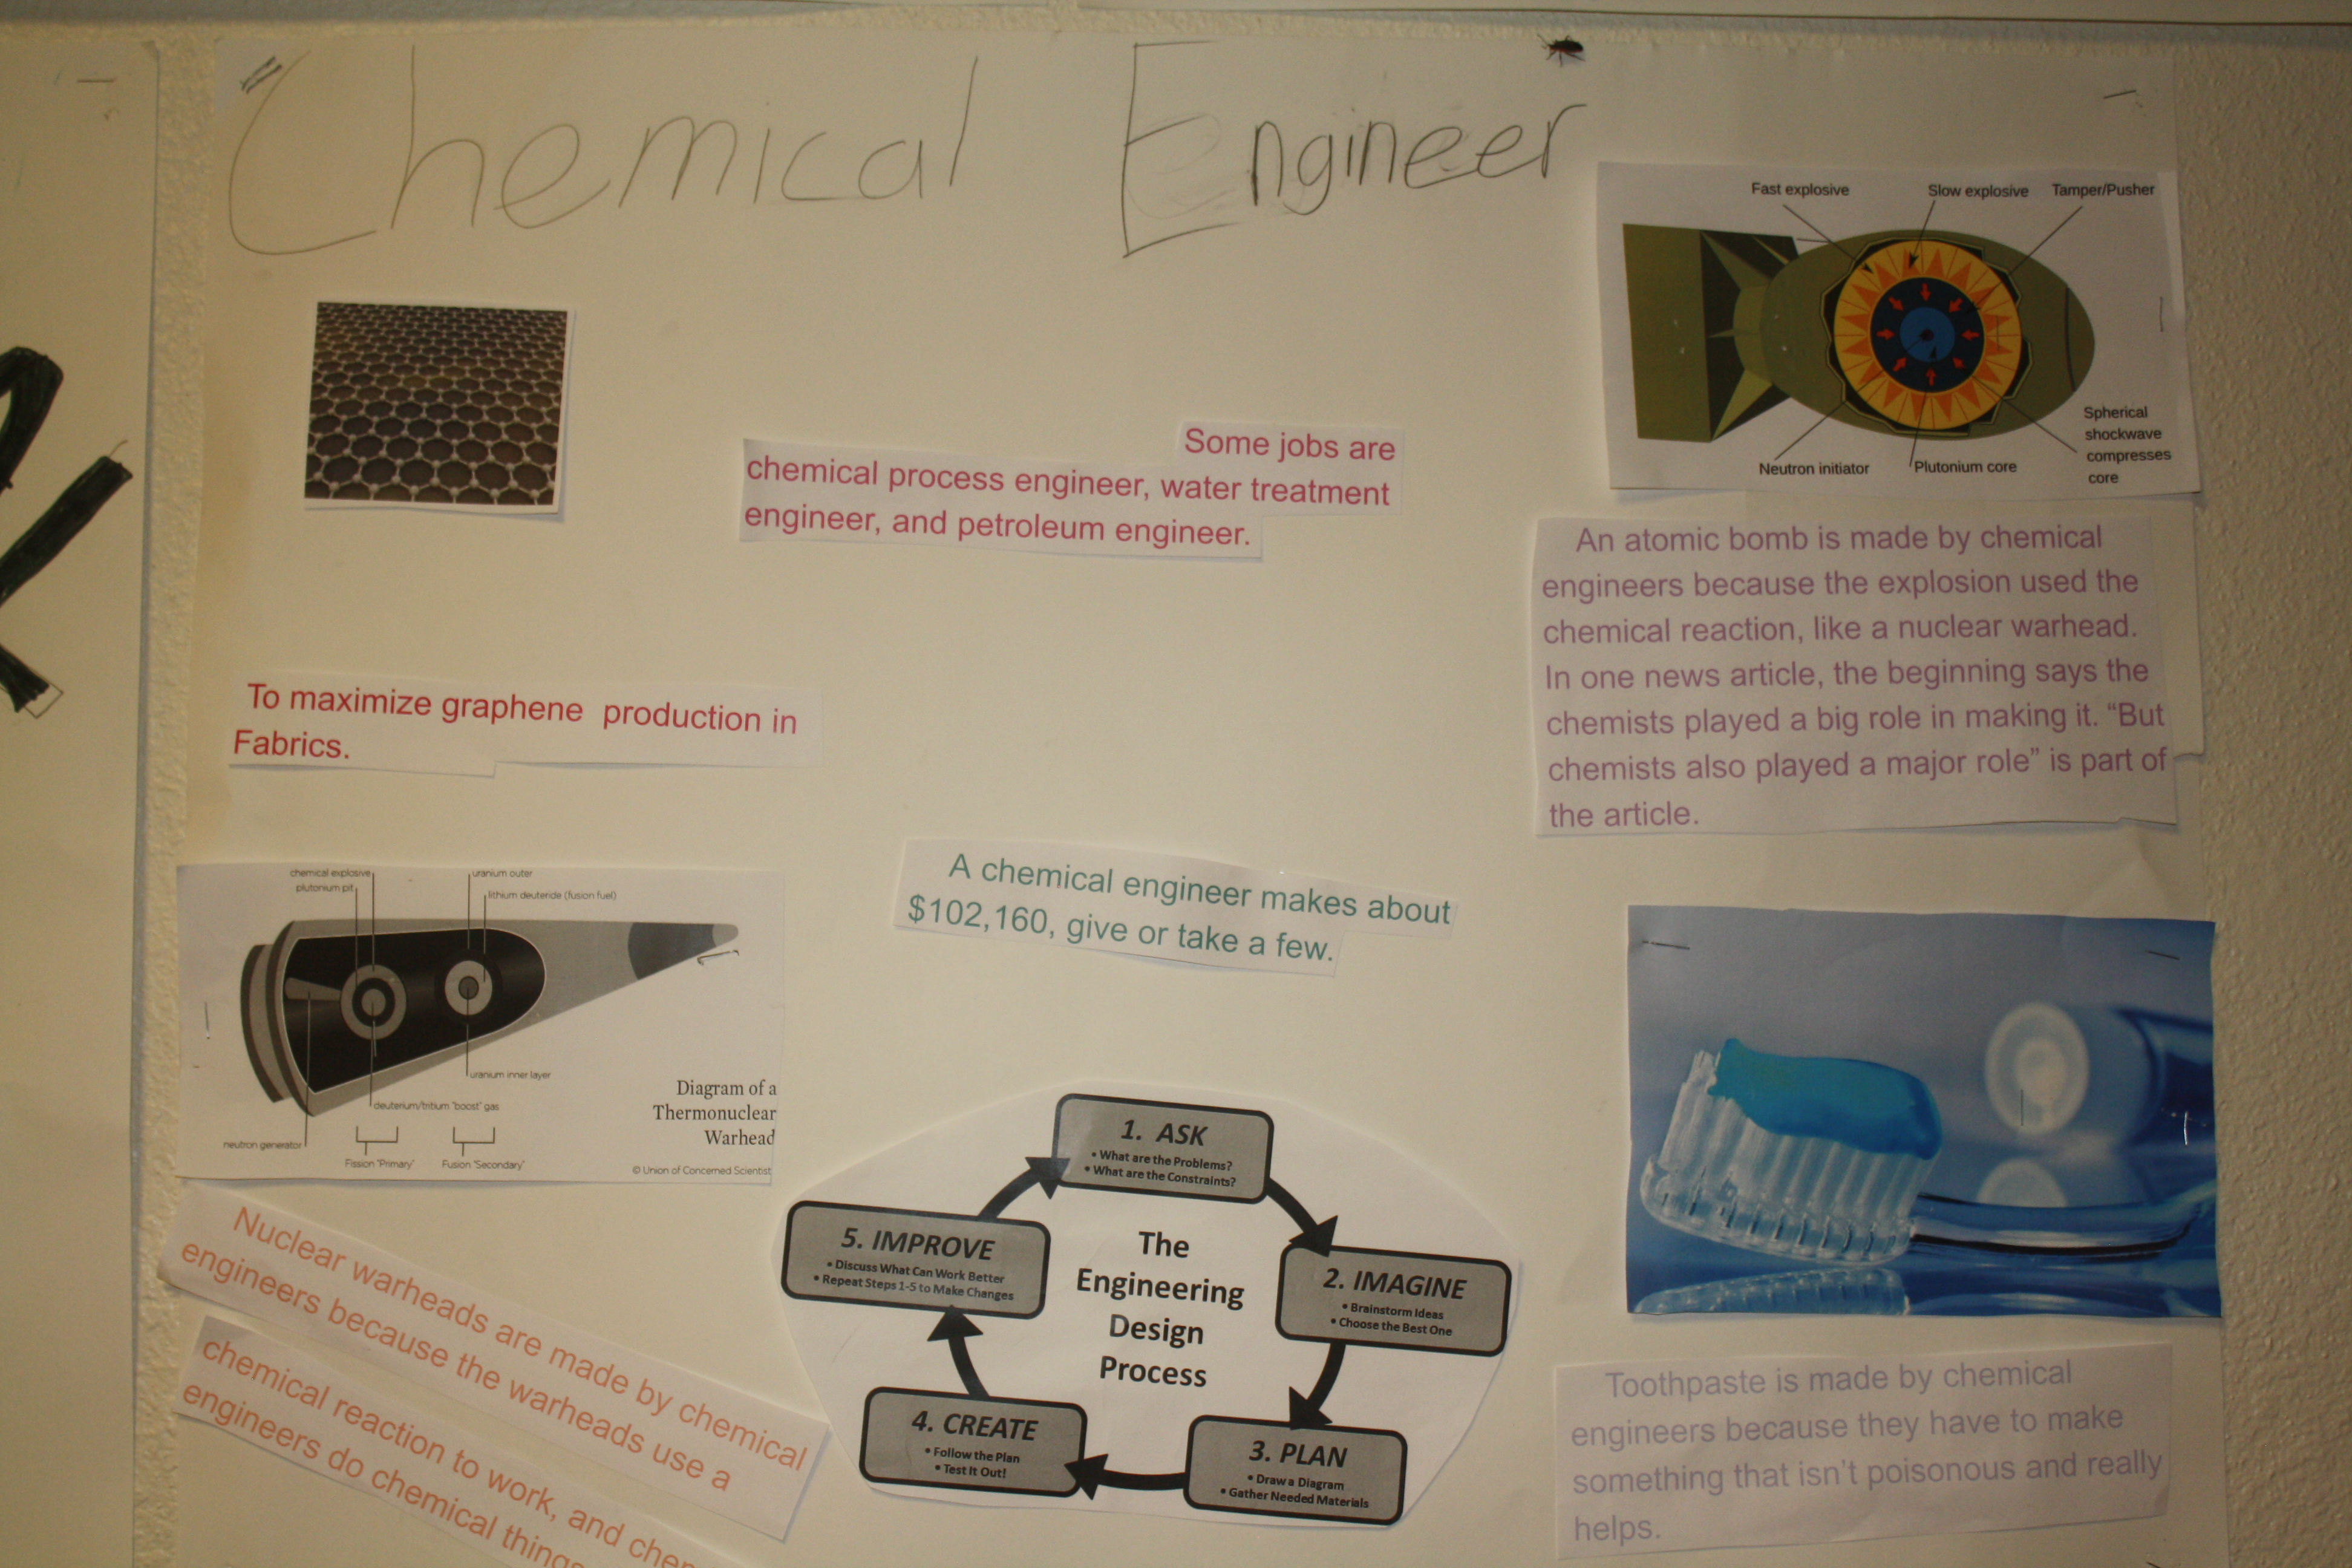 Chemical Engineer activity.